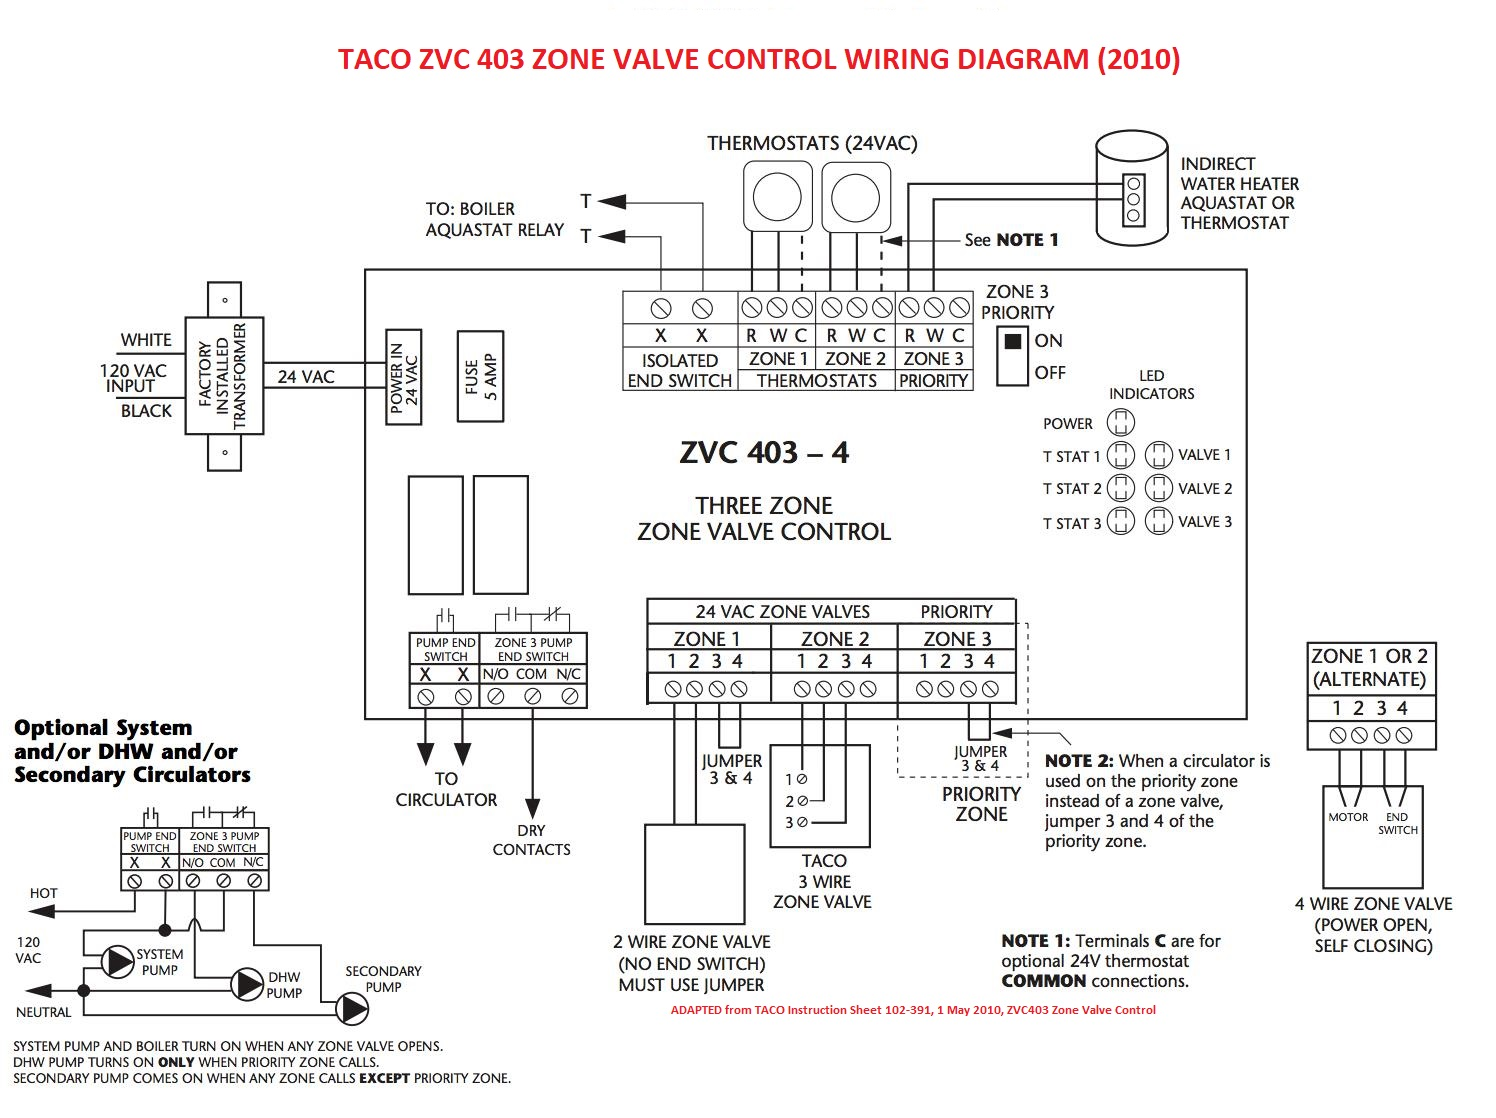 Zone Valve Wiring Installation Instructions Guide To Heating Switch Series Diagram Taci Zvc493 Click Enlarge At